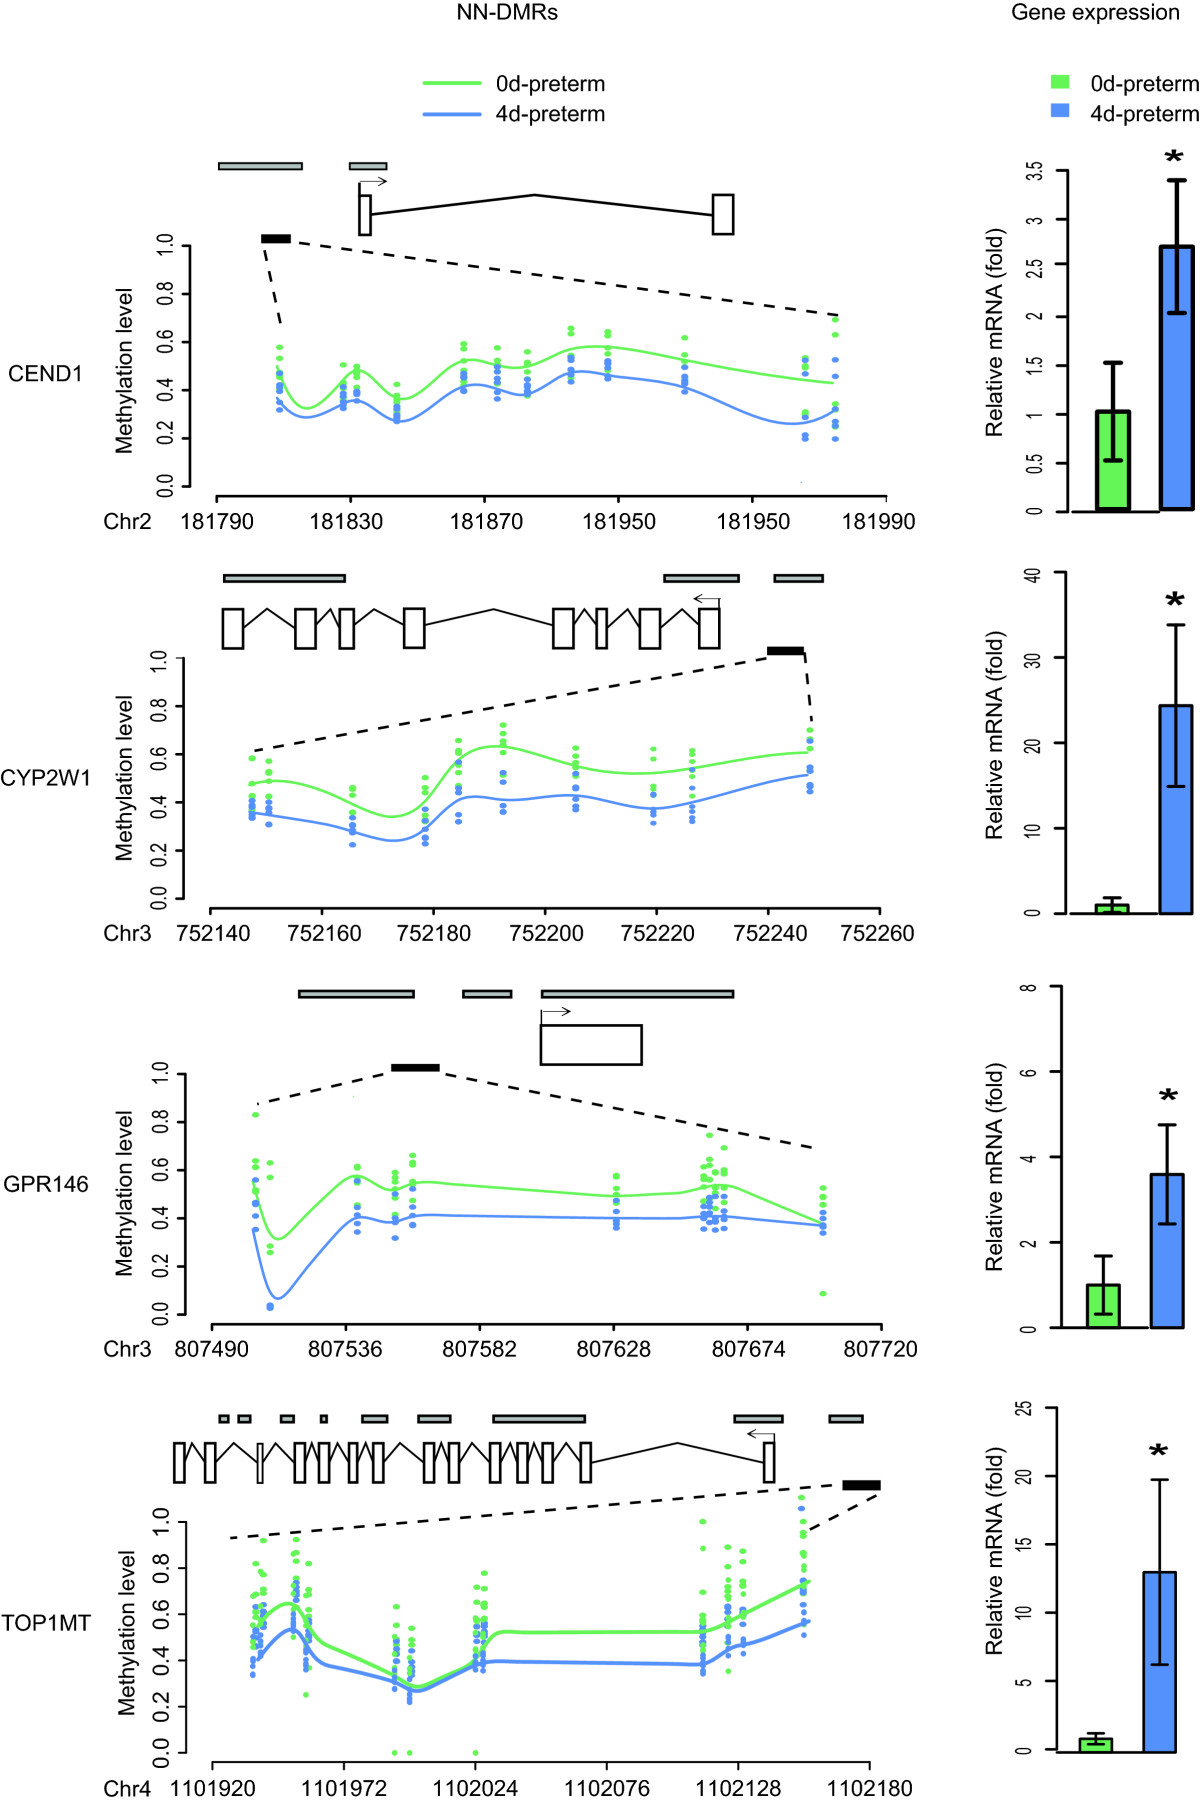 https://static-content.springer.com/image/art%3A10.1186%2F1471-2164-15-716/MediaObjects/12864_2014_Article_6393_Fig4_HTML.jpg